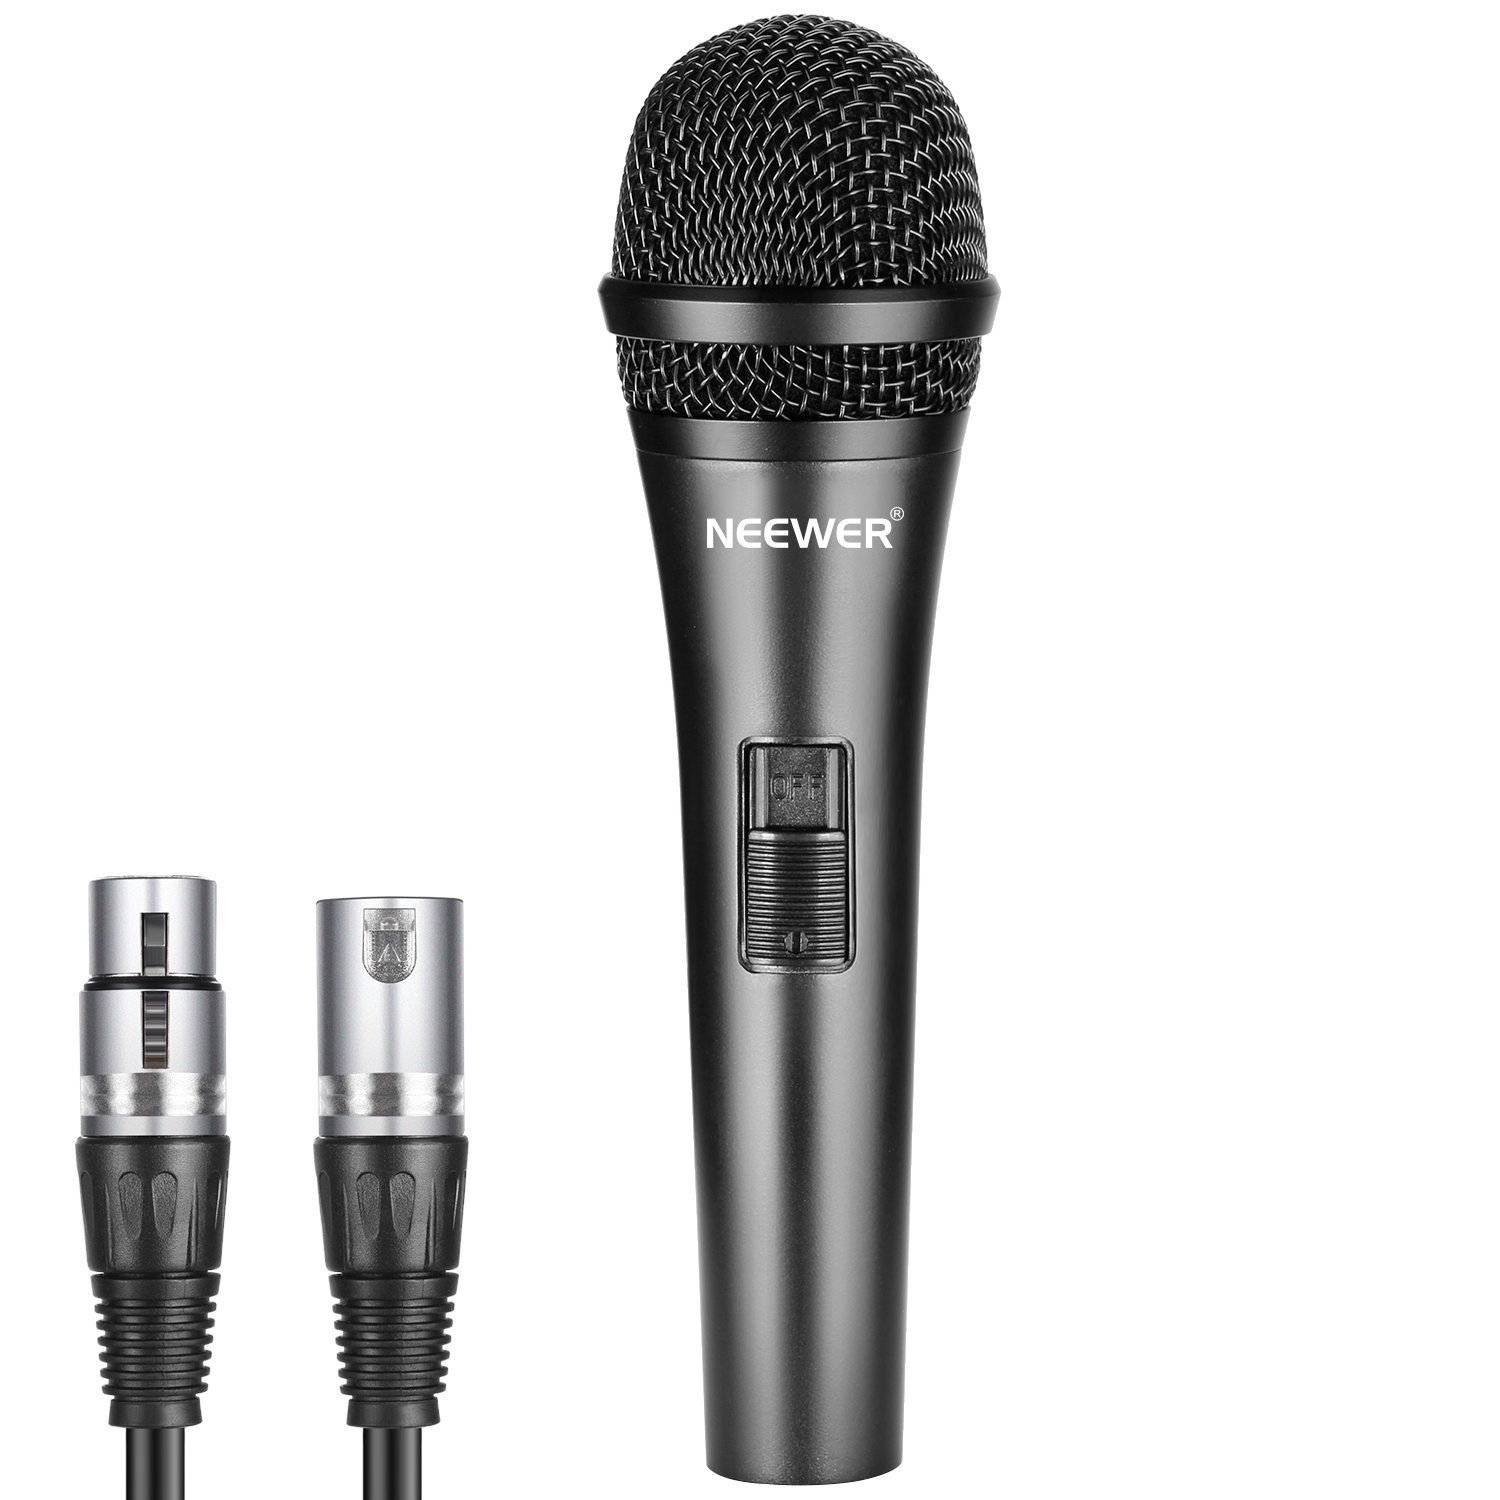 Neewer Cardioid Dynamic Microphone with XLR Male to XLR Female Cable, Rigid Metal Construction for Professional Musical Instrument Pickup, Vocals, Broadcasting, Speech, Black (NW-040) by Neewer